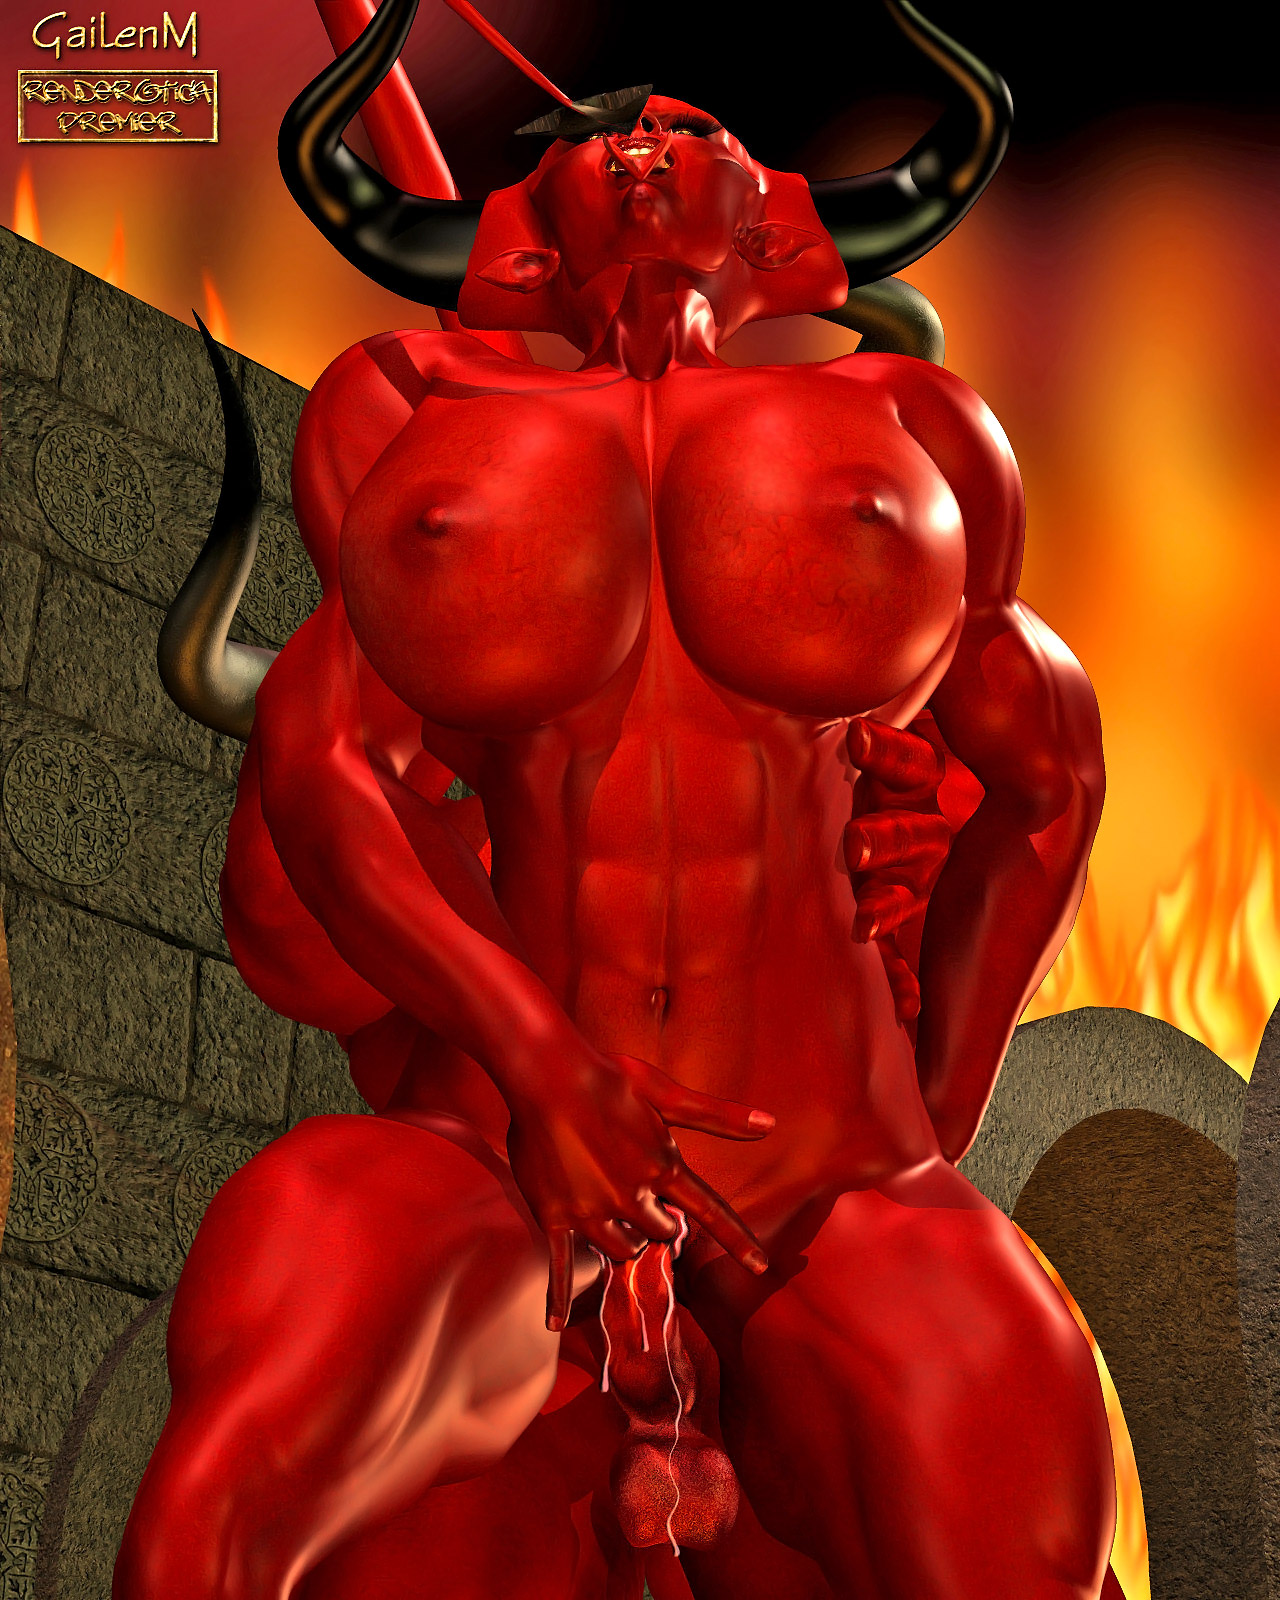 Free videos of demon cartoon sex naked video